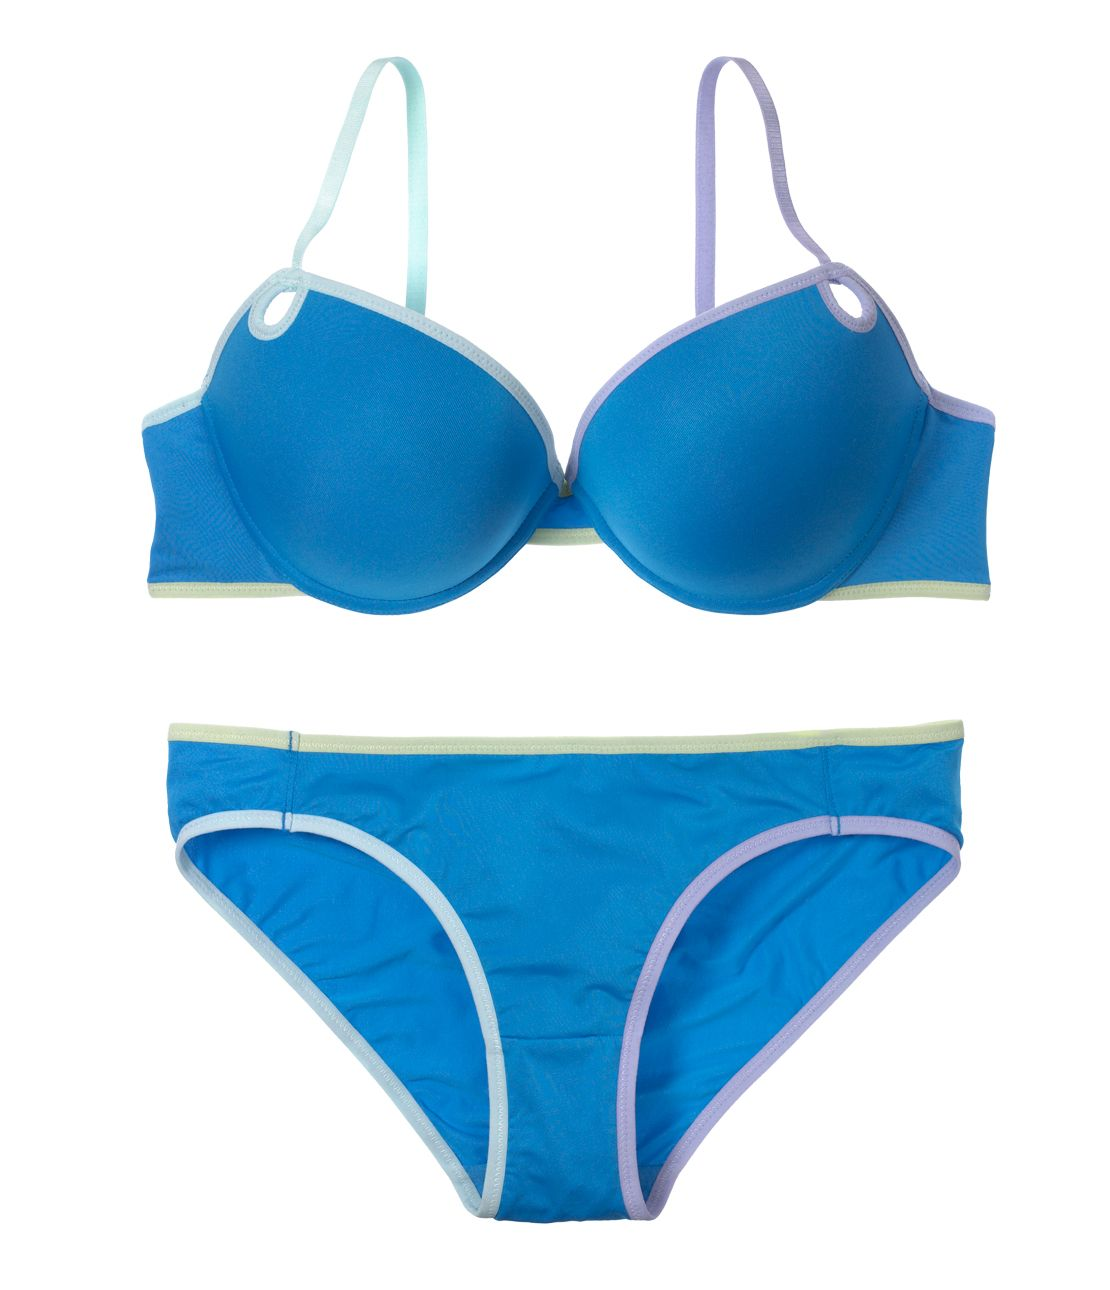 YM simple mix color bra set